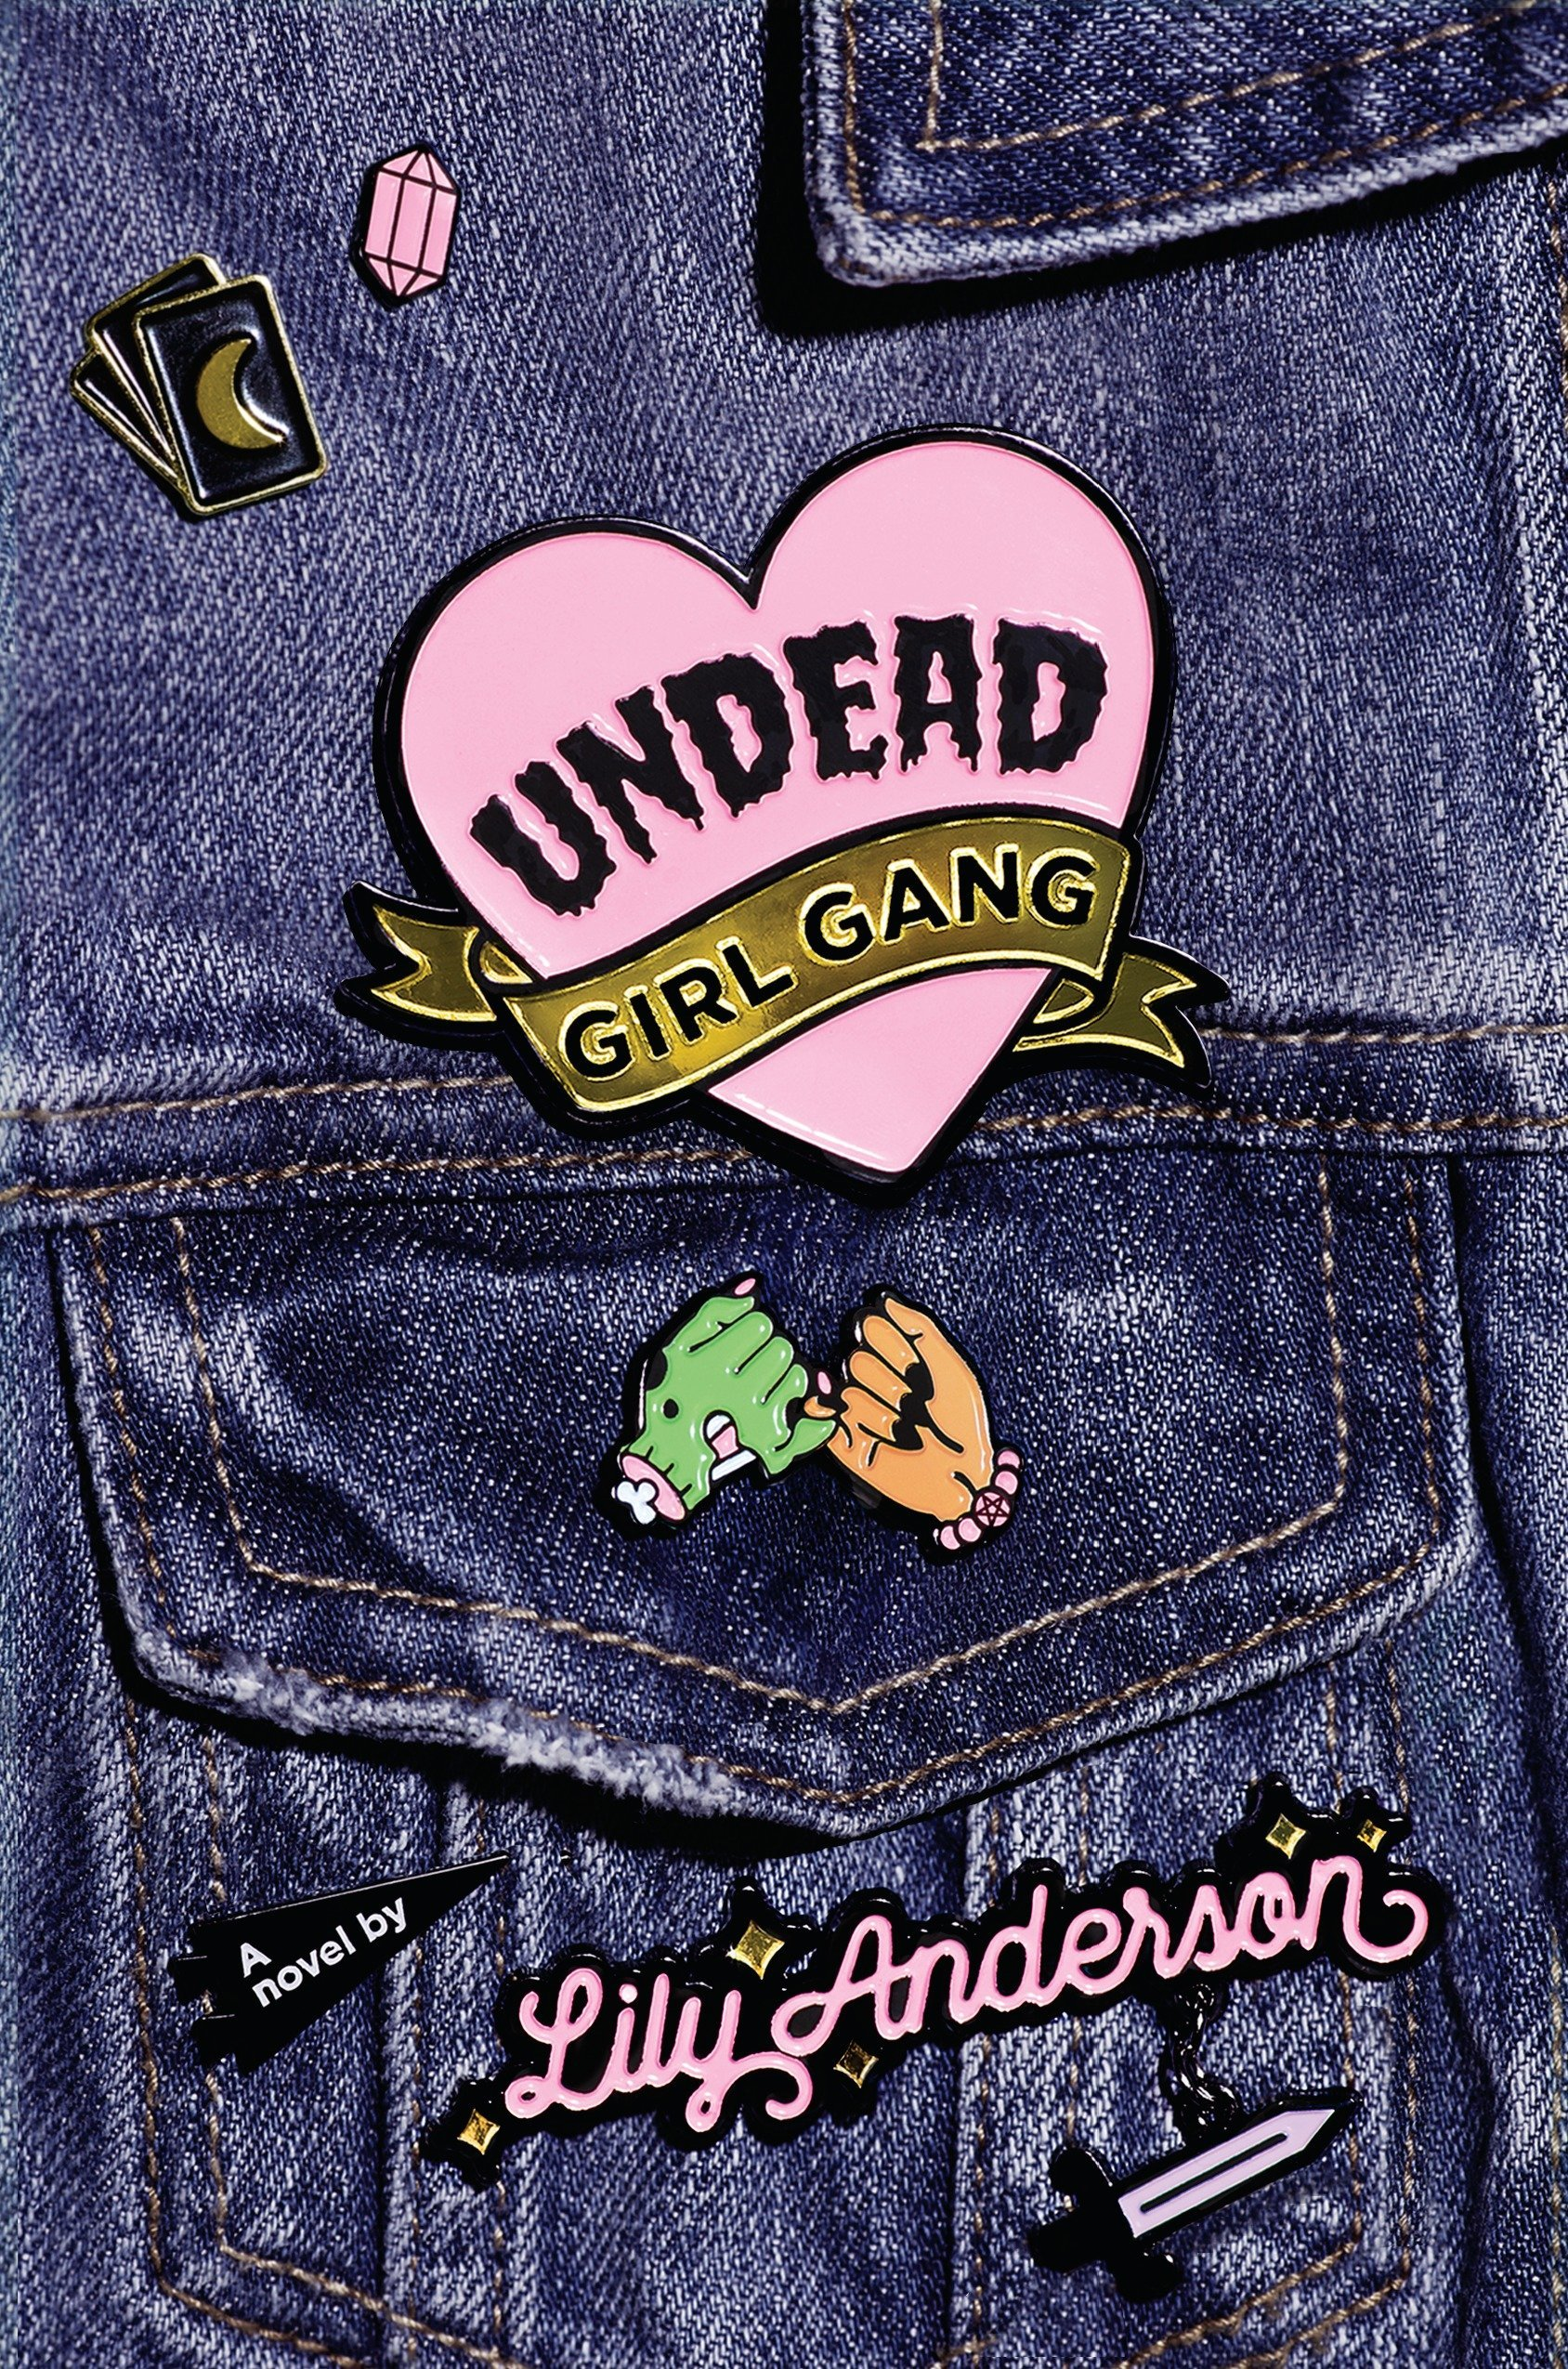 Image result for undead girl gang